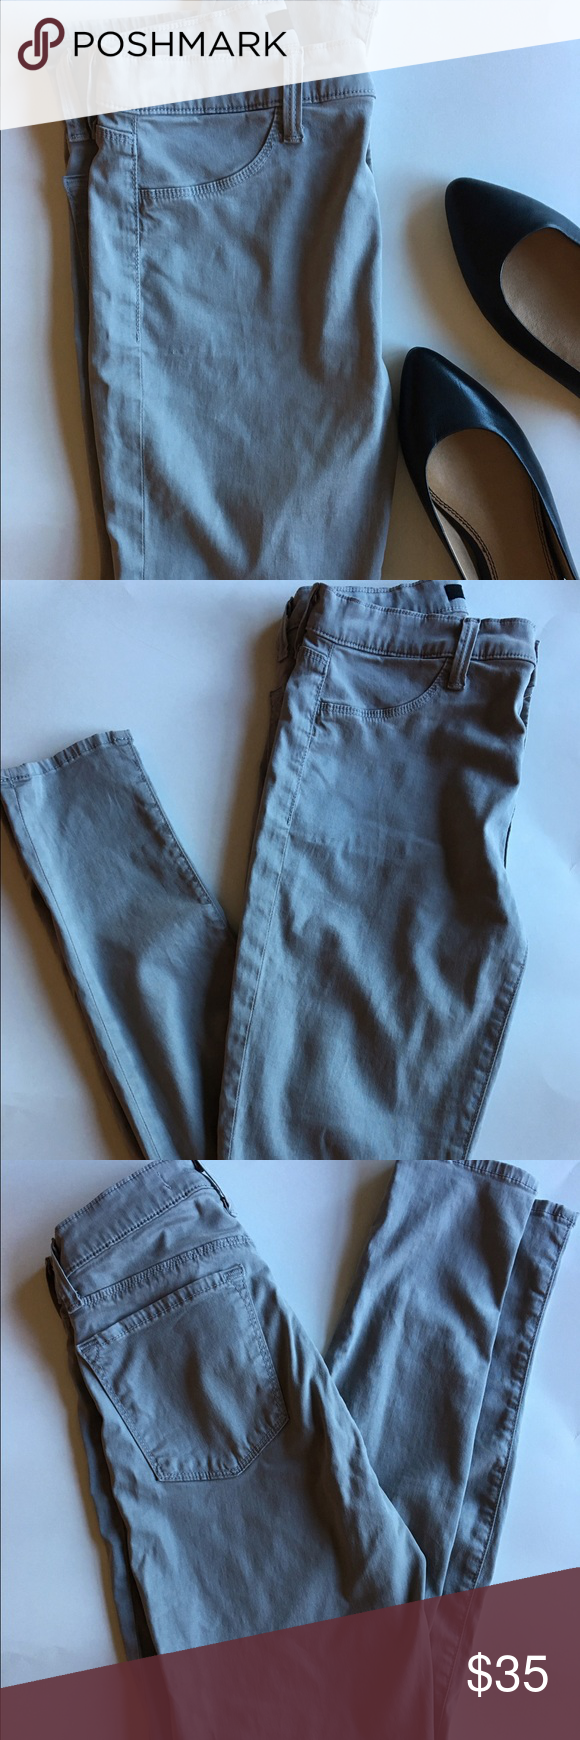 J Brand Gray Skinny Jeans J Brand Gray Skinnies. Size 28. Color called limestone. Super soft and in excellent condition. Front pockets are faux. These are stretchy and feel like a jegging J Brand Jeans Skinny